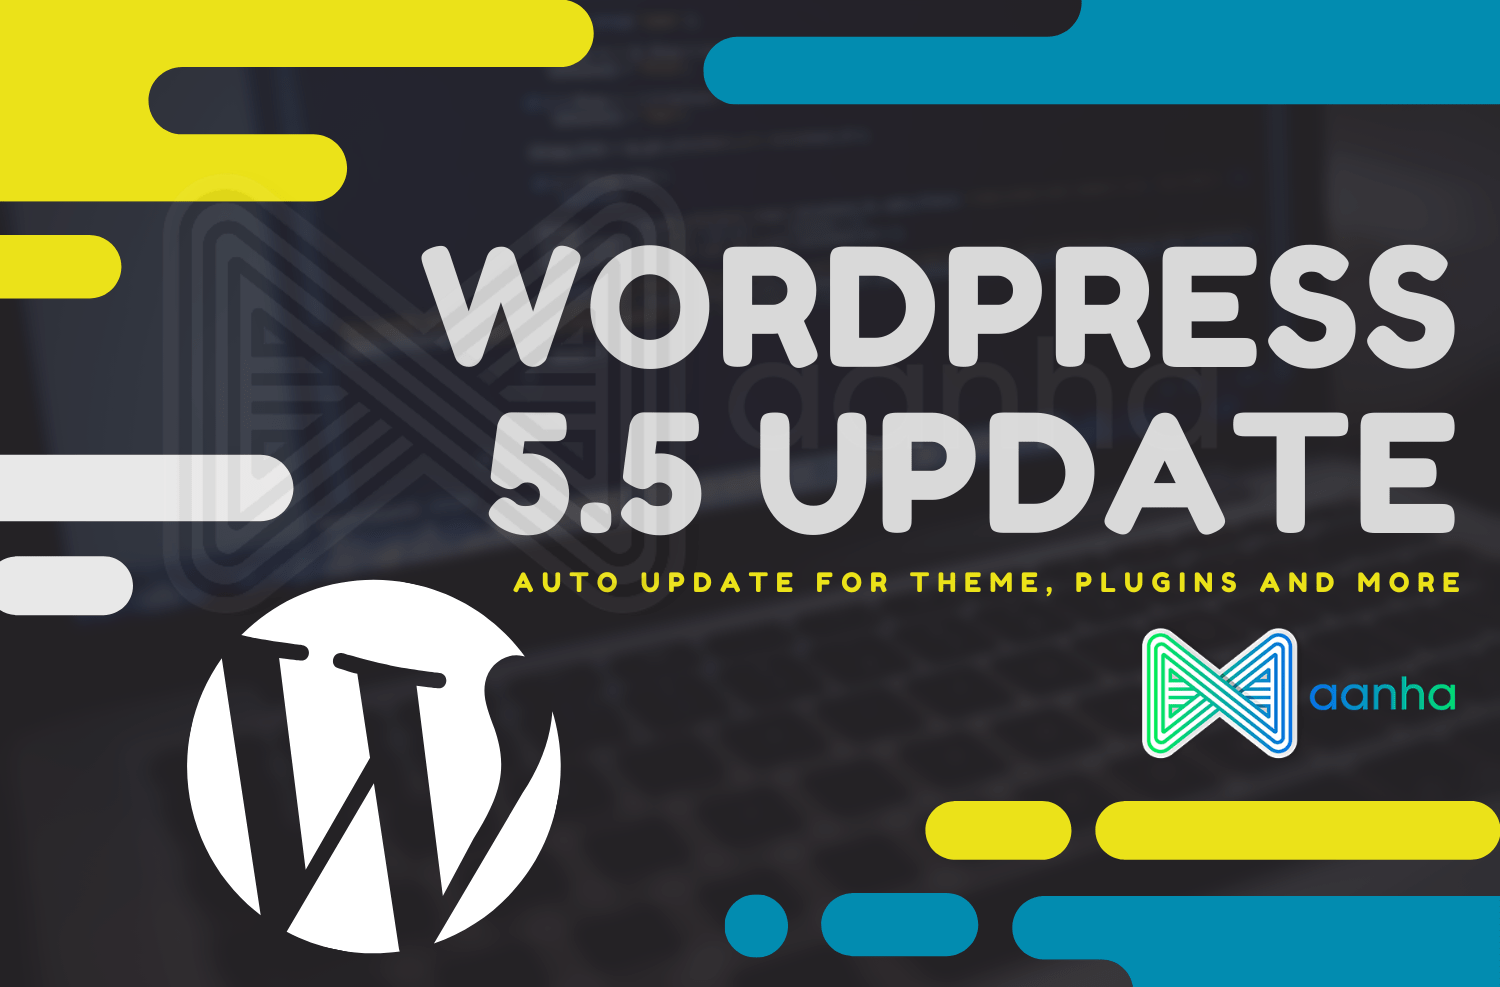 WordPress 5.5 Update Release and its New Features